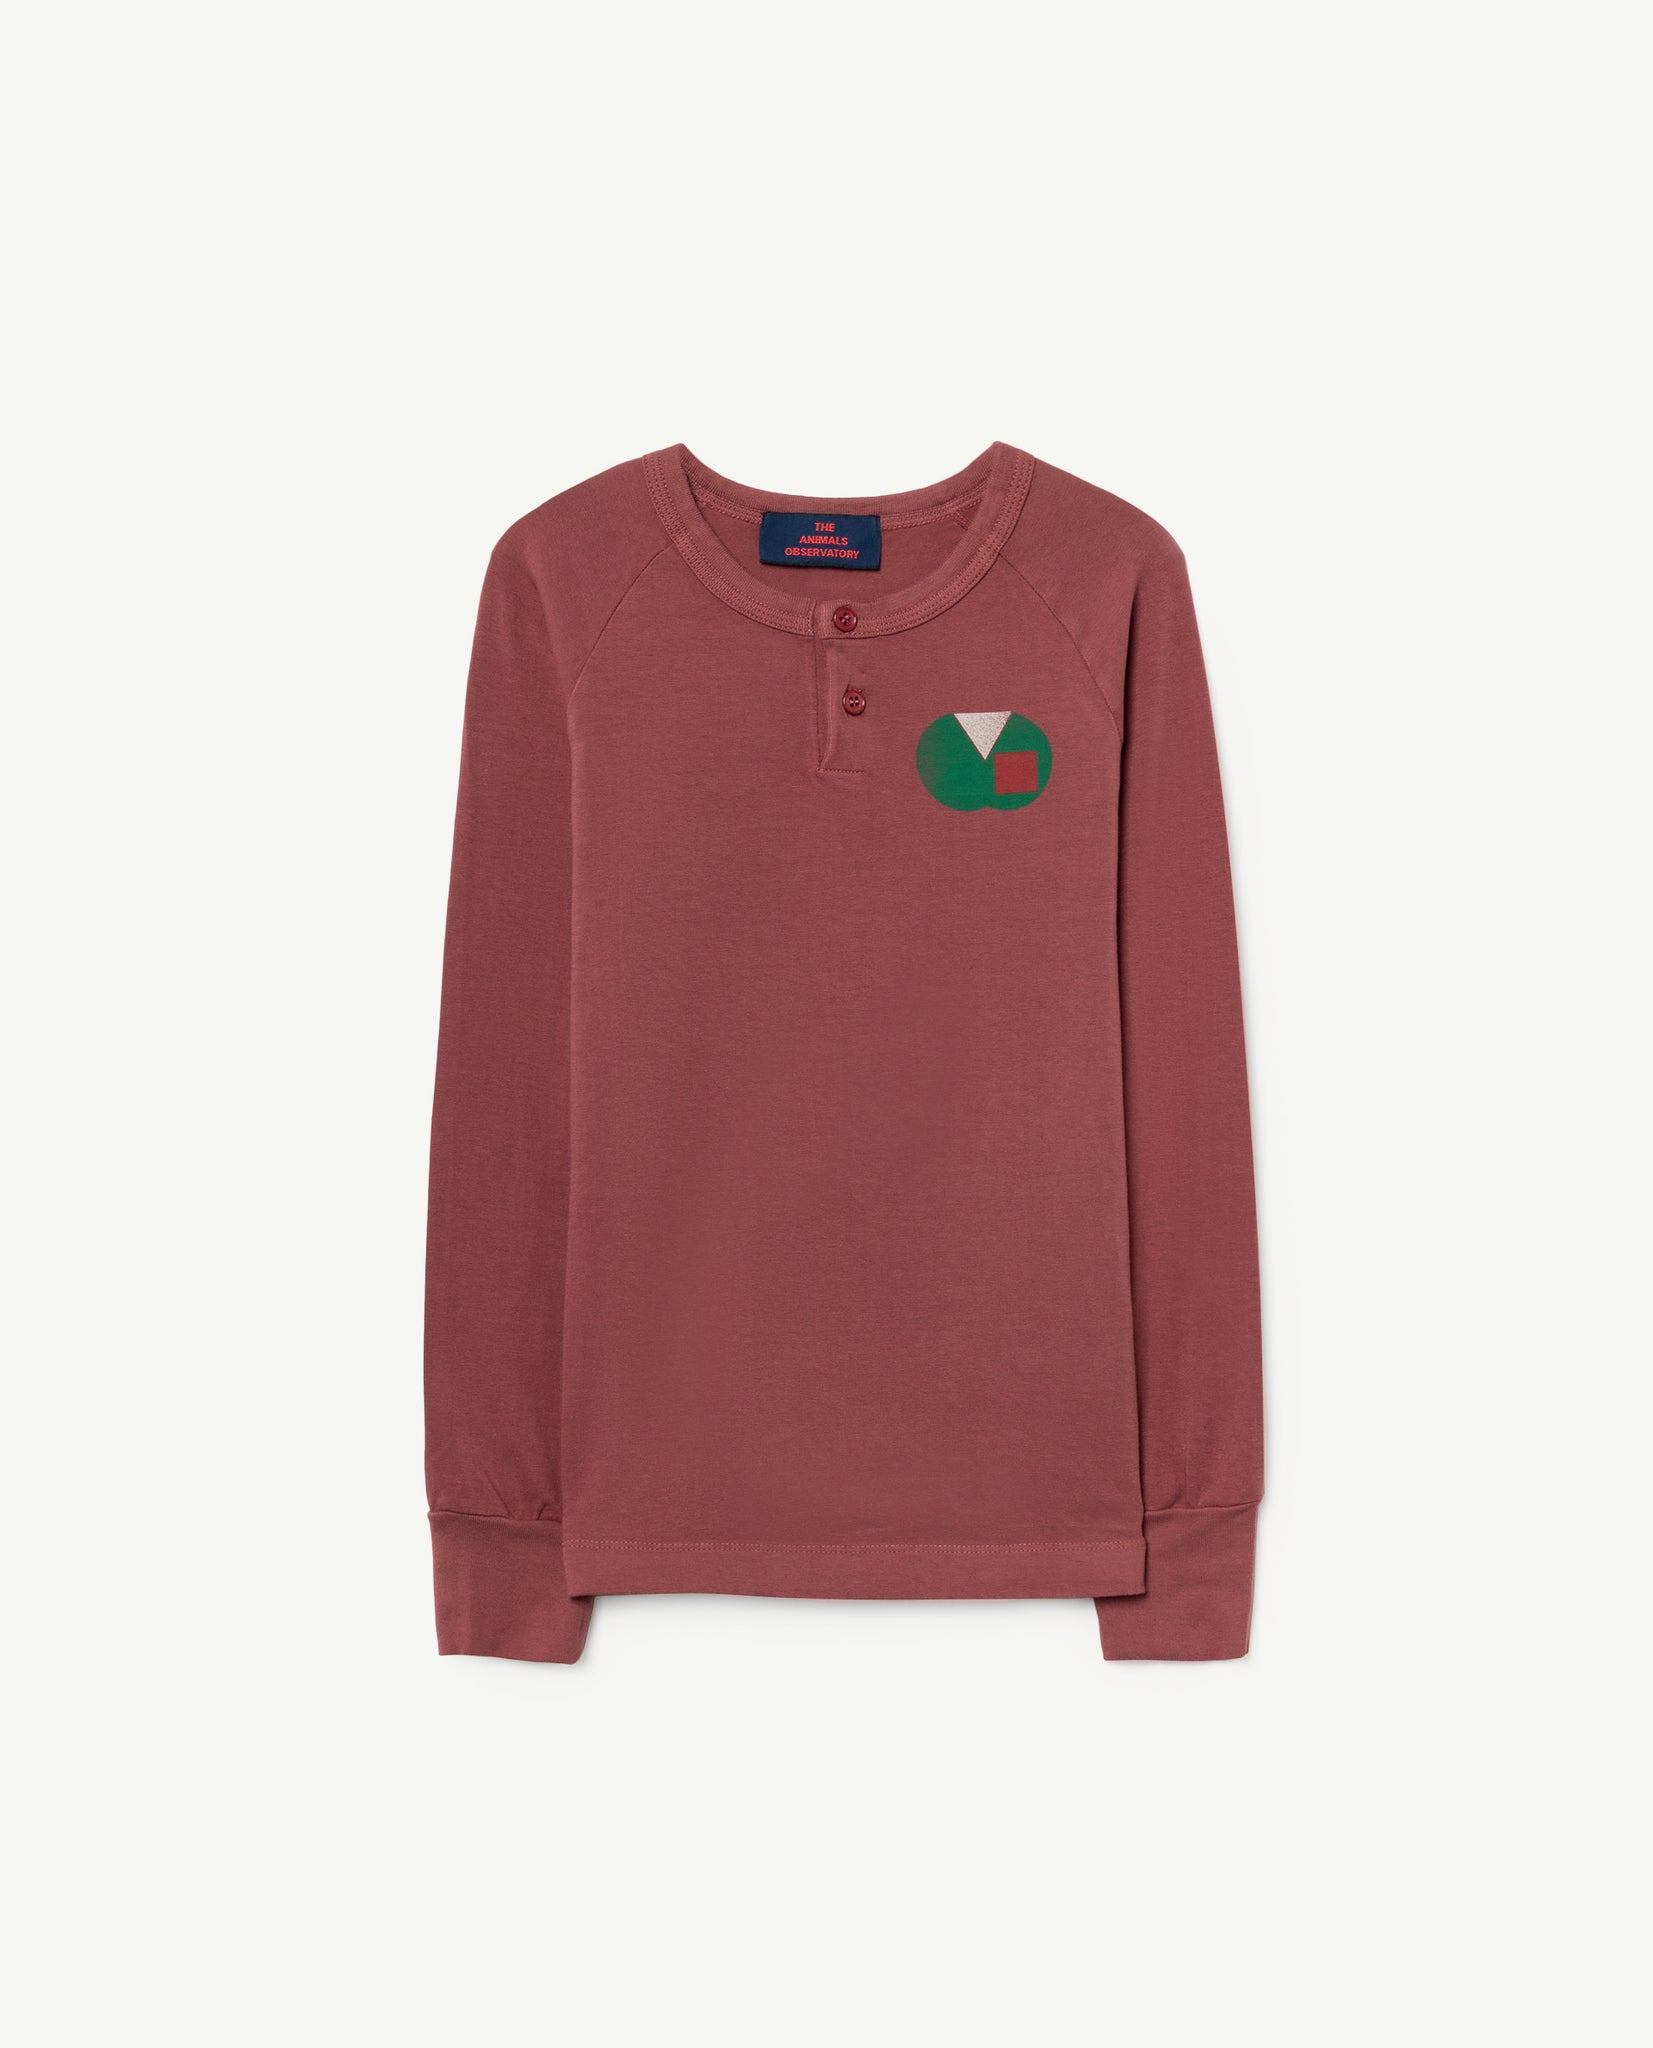 Deer kids T-tshirt - maroon apple